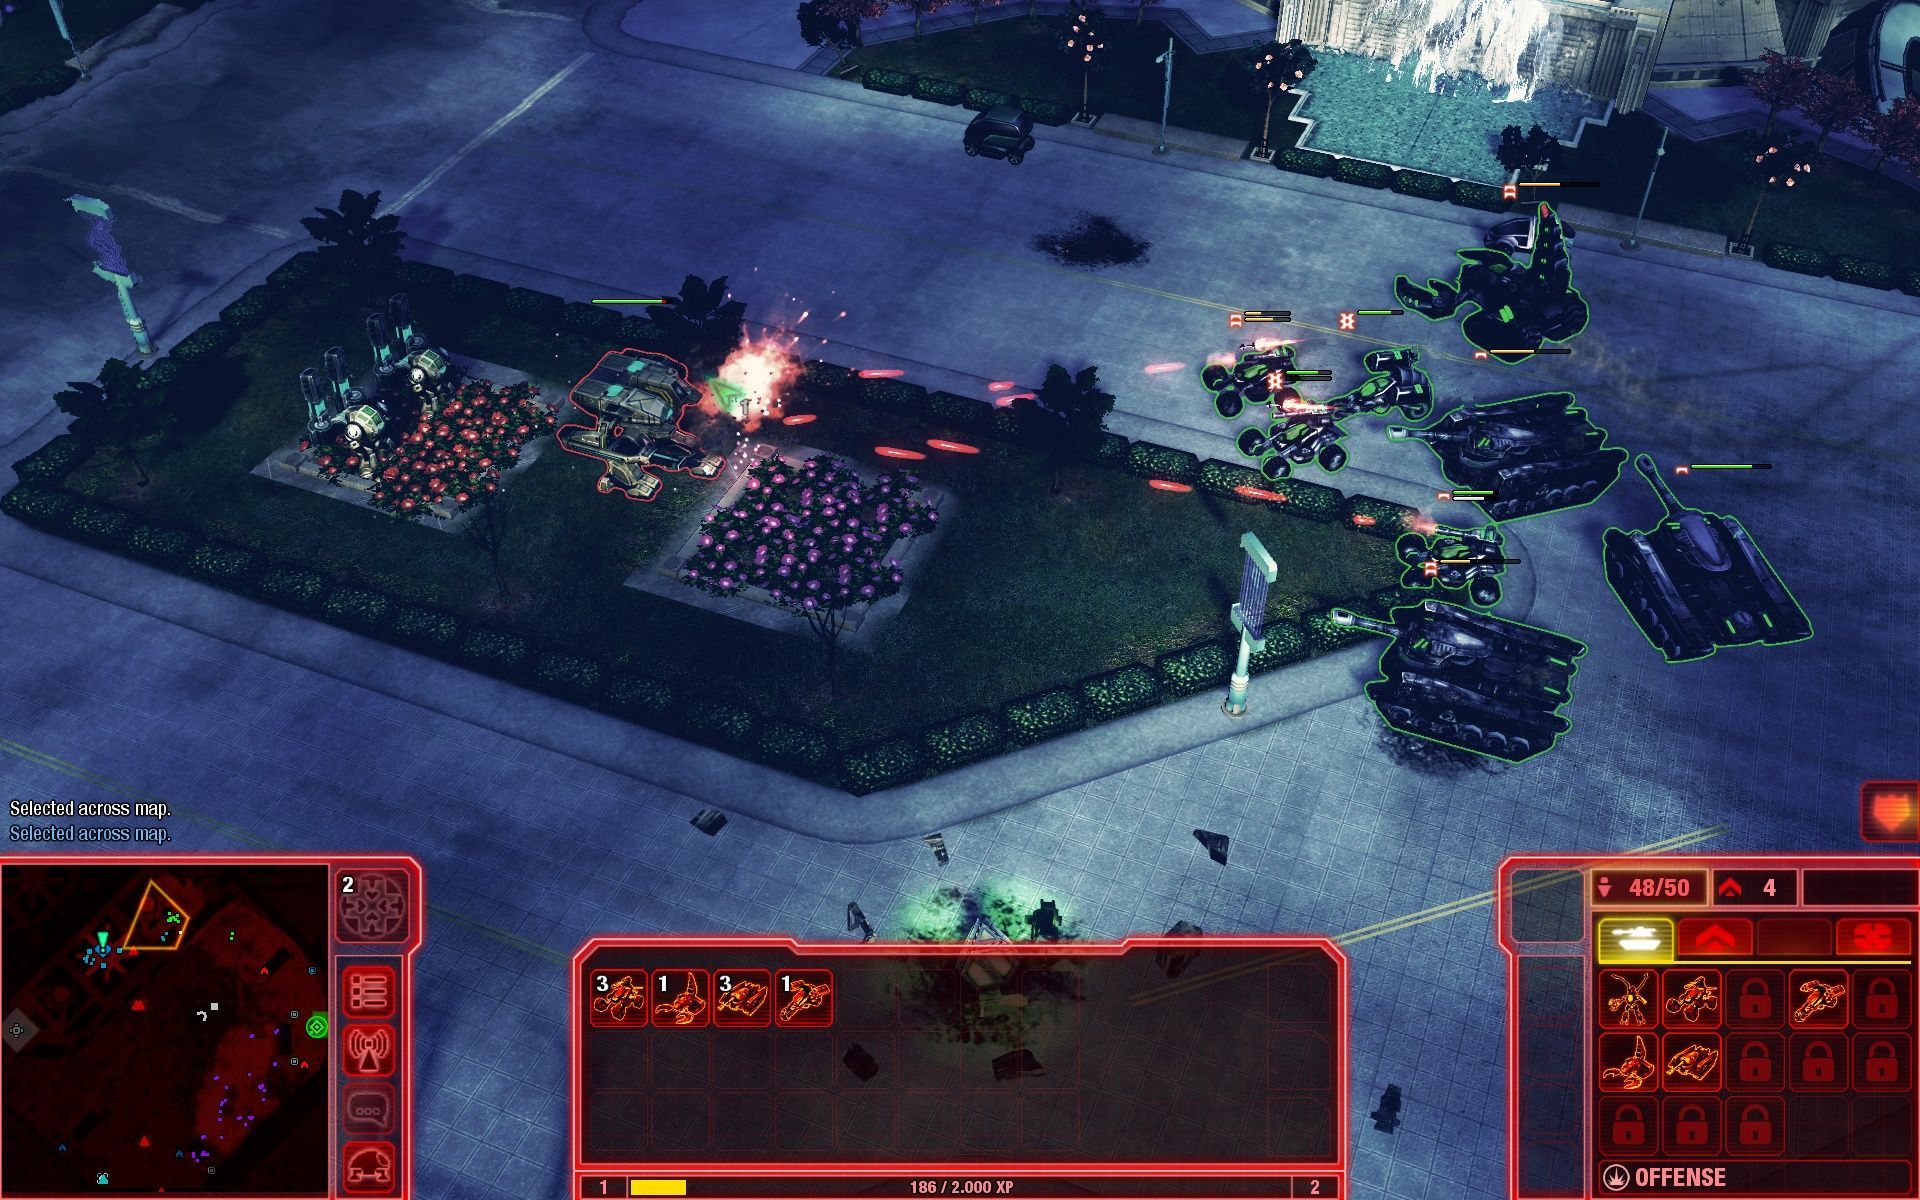 Command & Conquer 4: Tiberian Twilight Windows That GDI-mech has no chance against my NOD-troops.